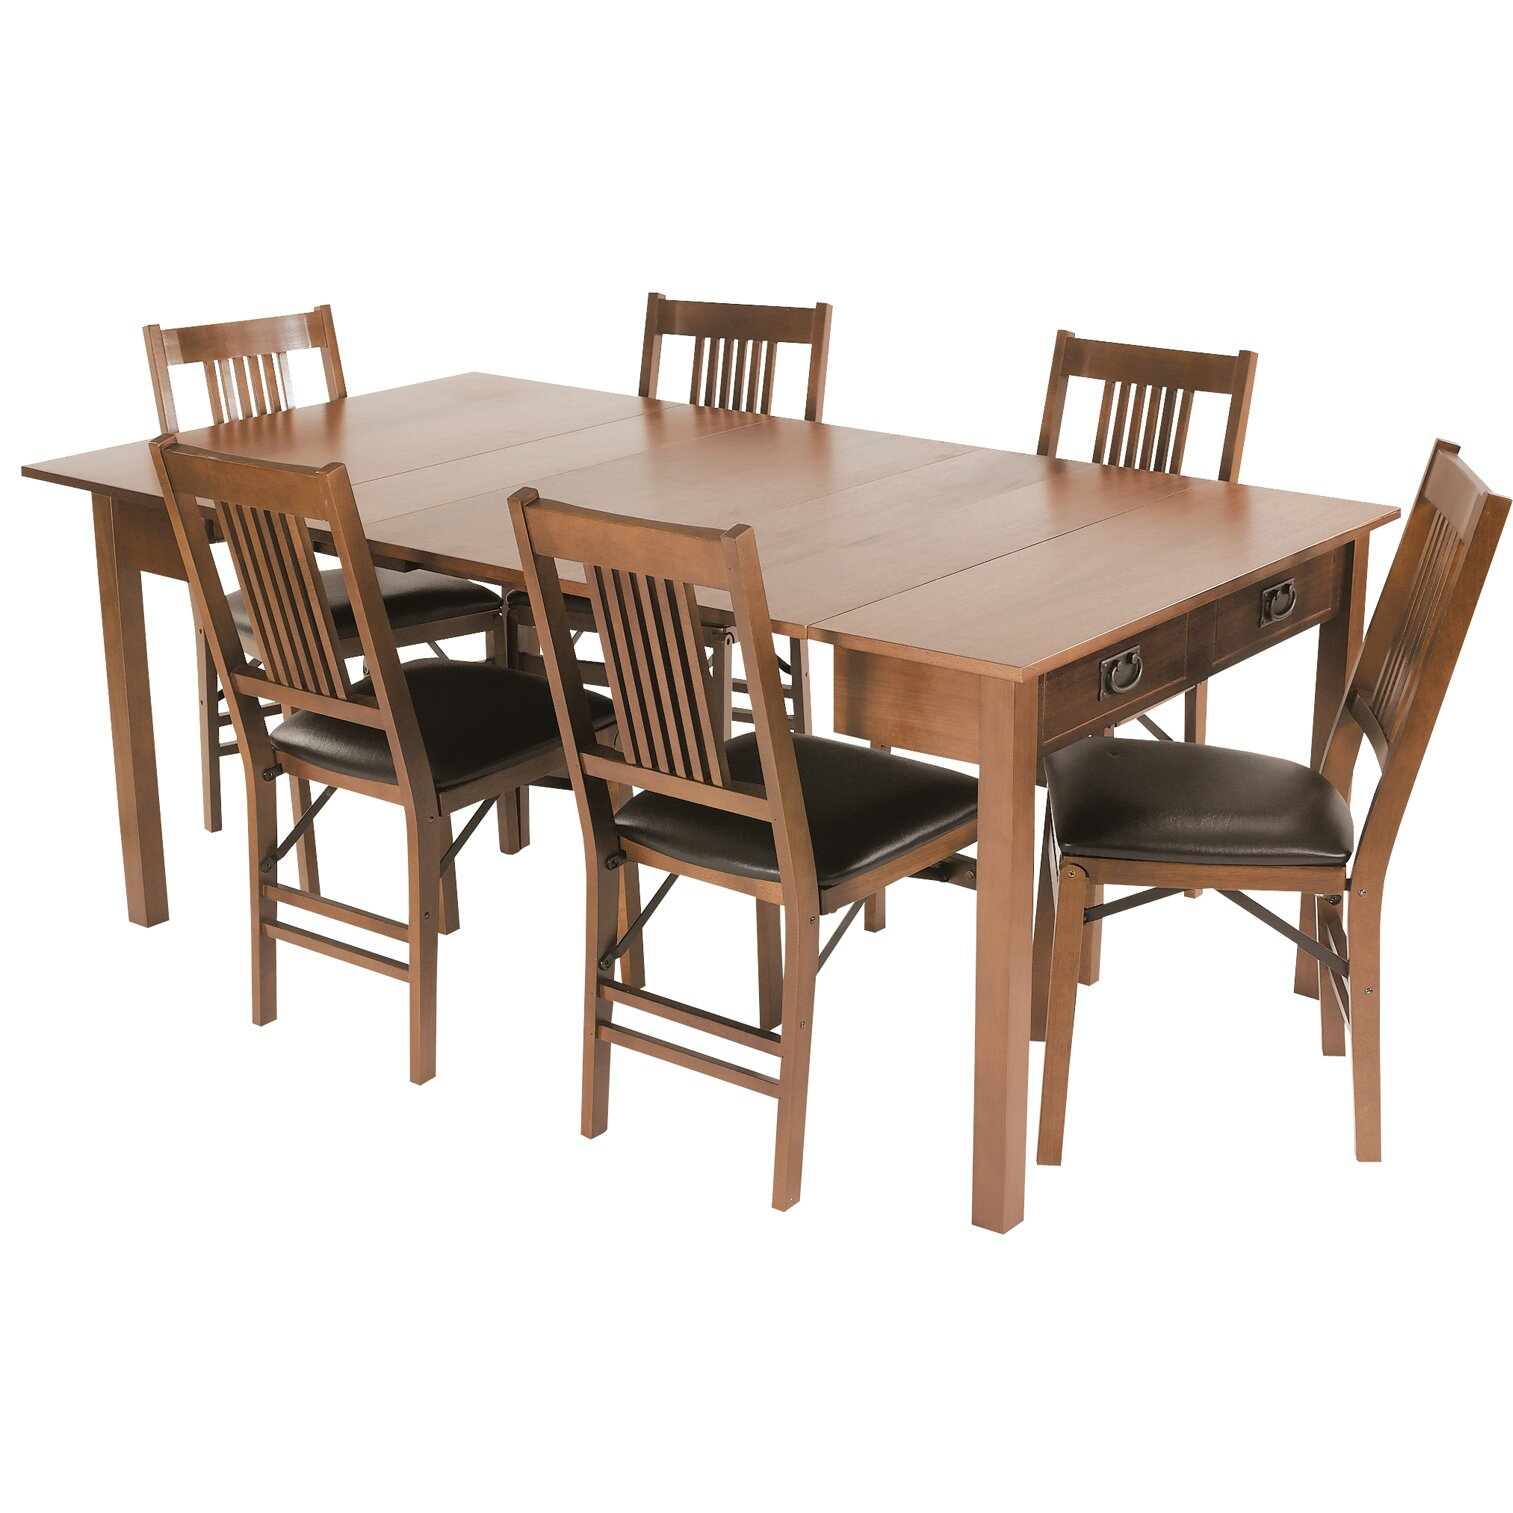 Stakmore mission style expanding dining table reviews for Expandable dining table